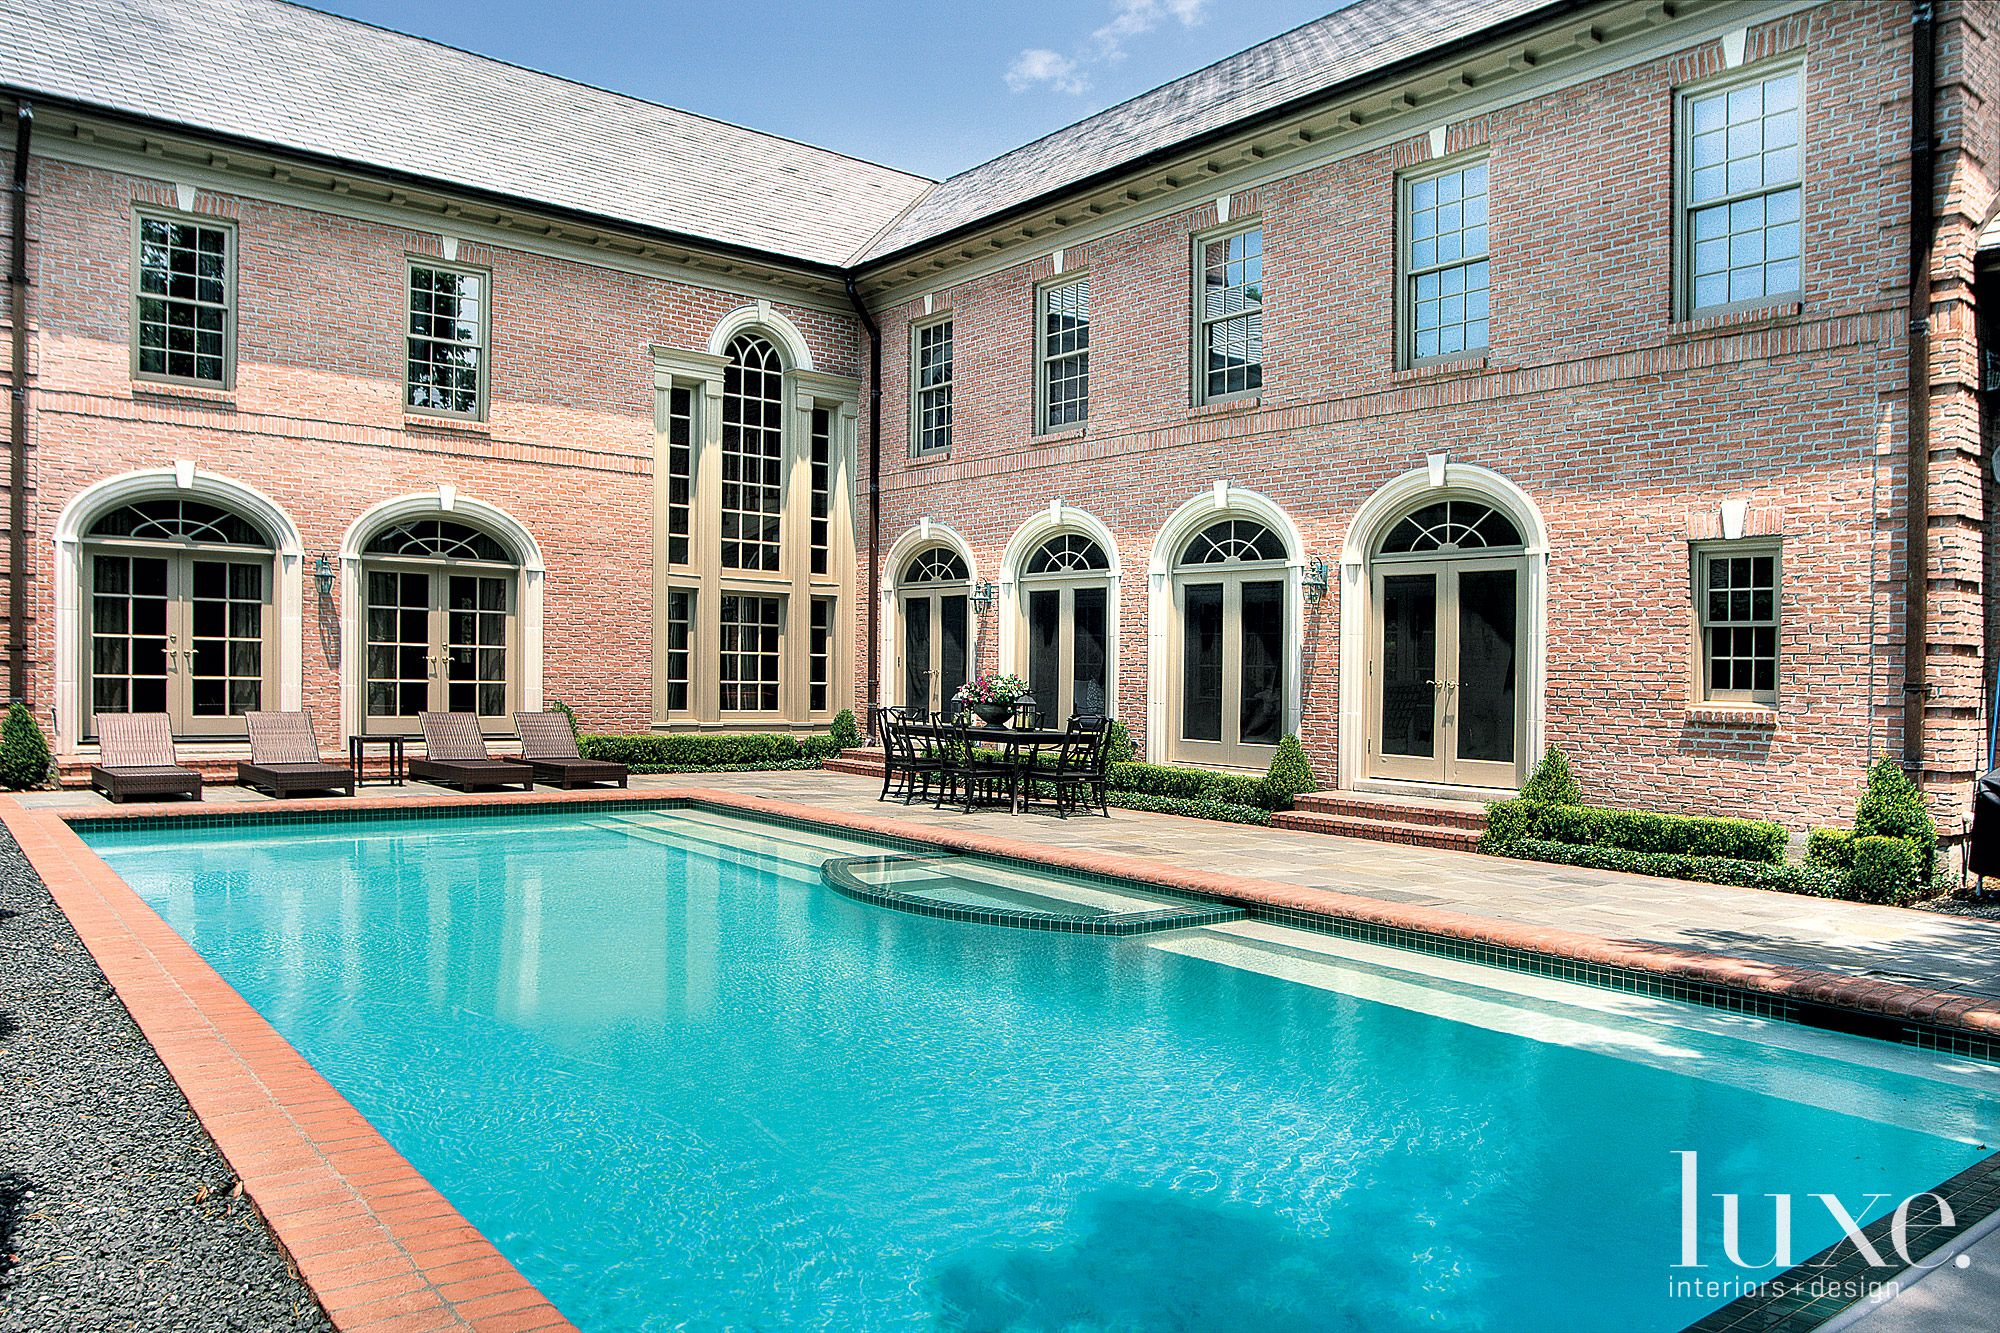 Traditional Rear Exterior with Pool Area